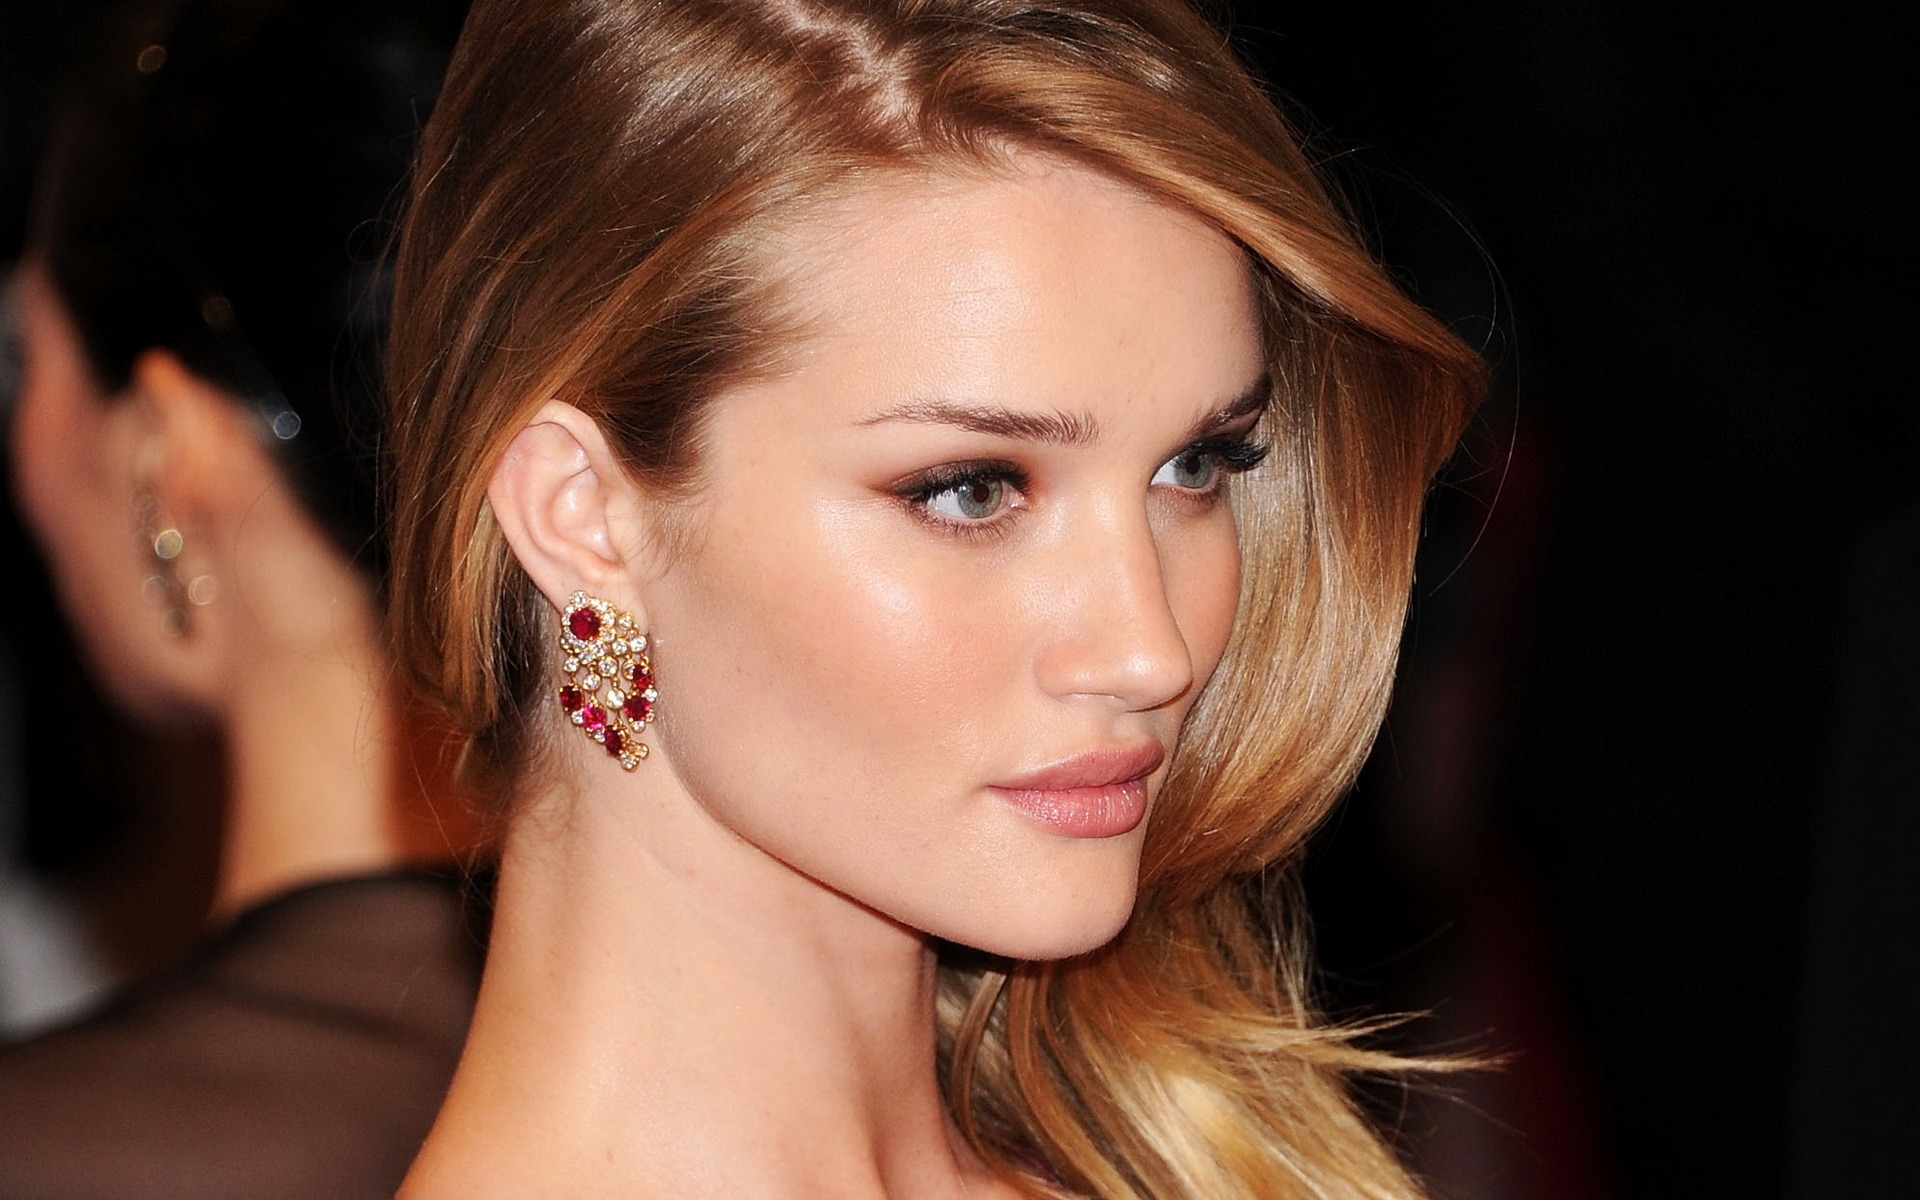 Rosie-Huntington-Whiteley-Full-HD-Wallpaper-6